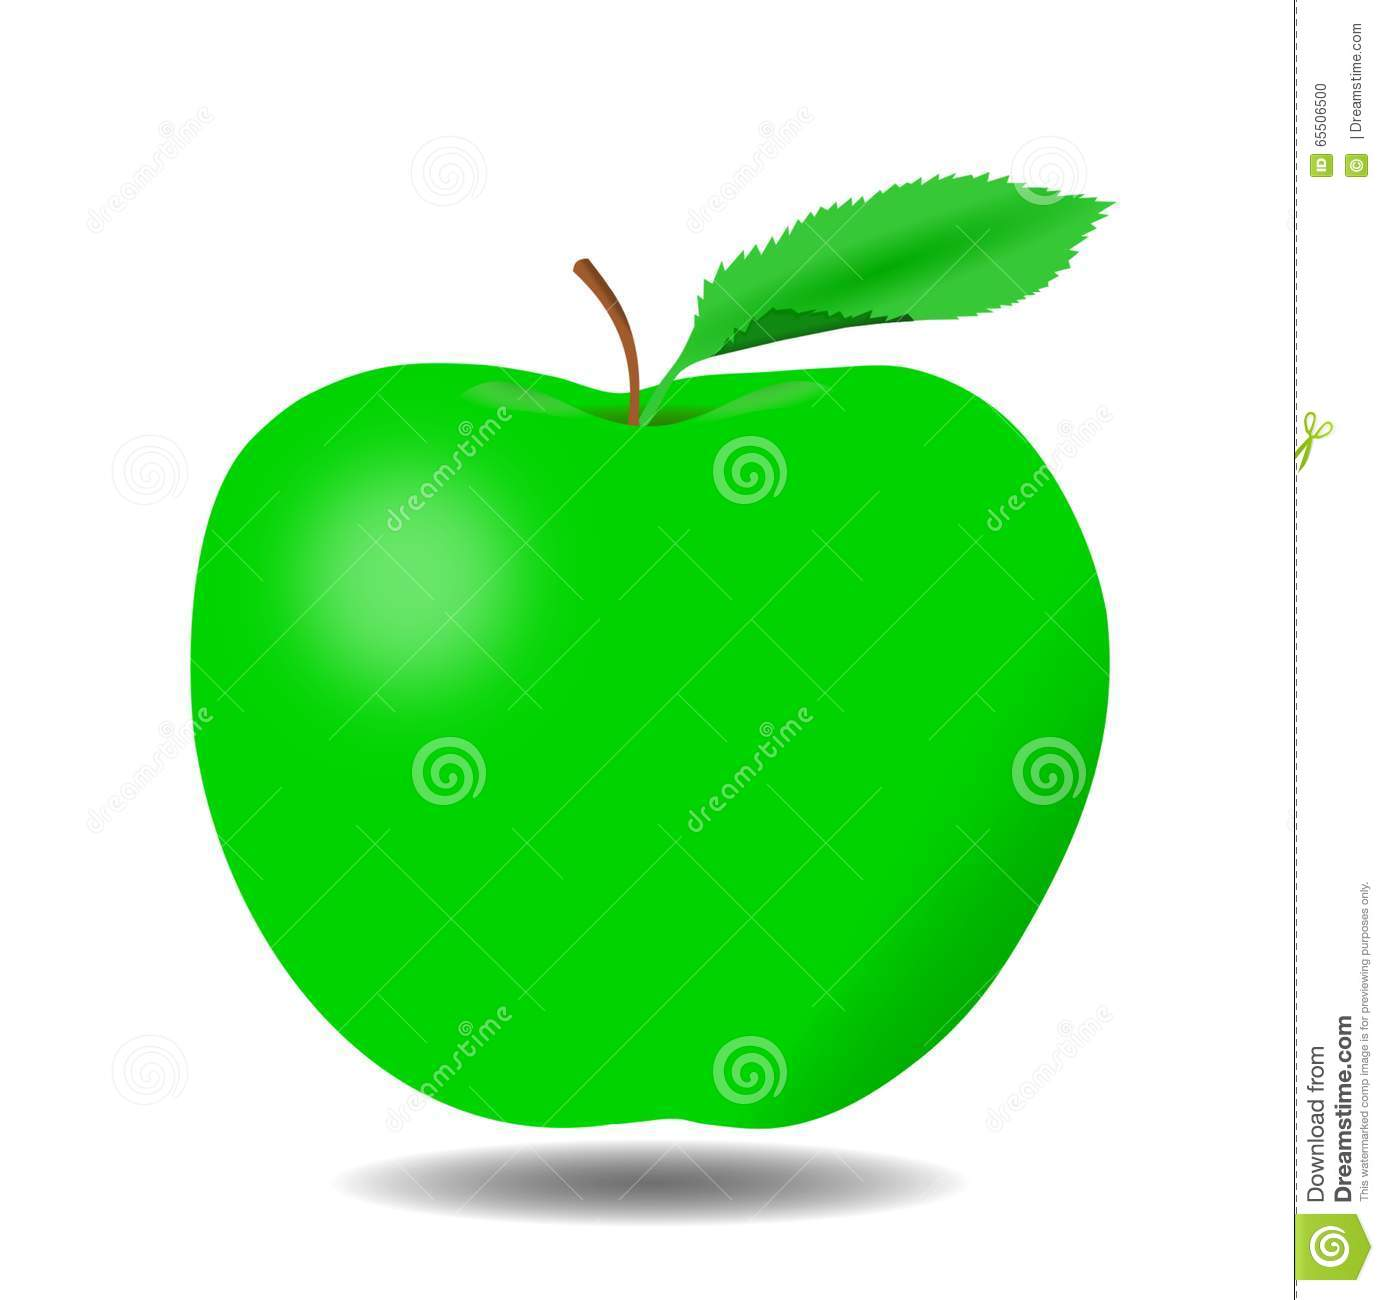 delicious green apple illustration - photo #47